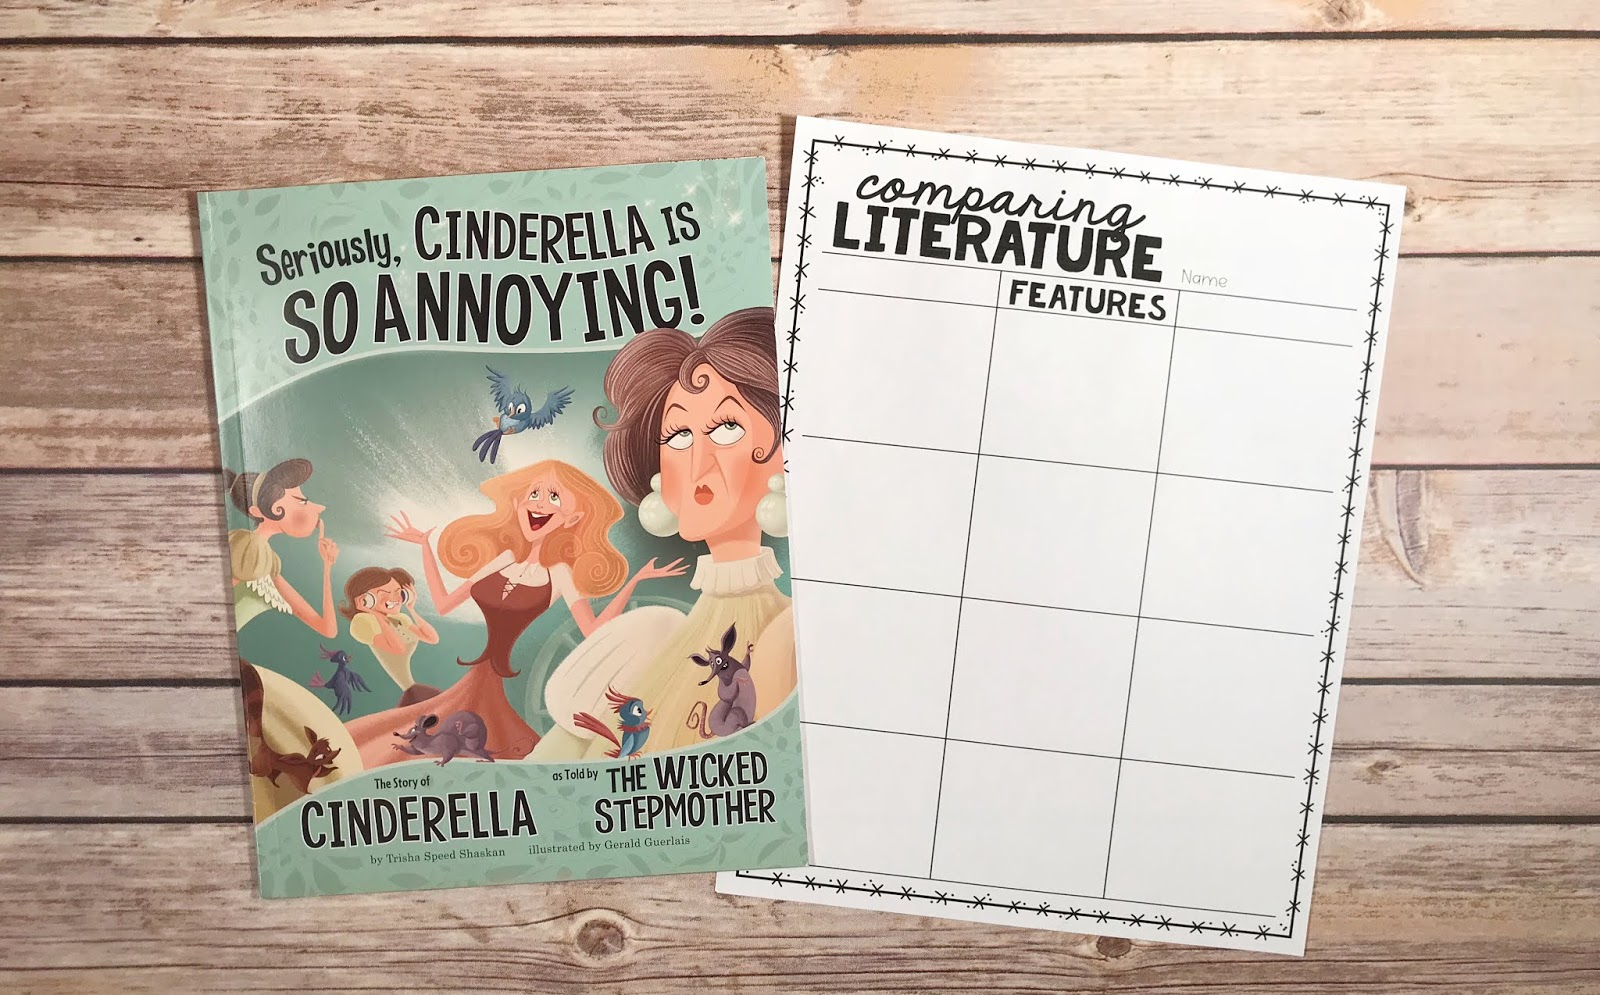 Using Mentor texts is fun way to teach 10 reading skills in 10 weeks to upper elementary students. These digital and printable graphic organizers are a fun way to engage , whether you utilize mentor texts in centers, small groups or the whole class. 3rd, 4th, and 5th graders will enjoy a read aloud while strengthening their comprehension of story theme, character inferences, making predictions, and exploring cause and effect. {third, fourth, fifth grade, digital, printable, reading skills}